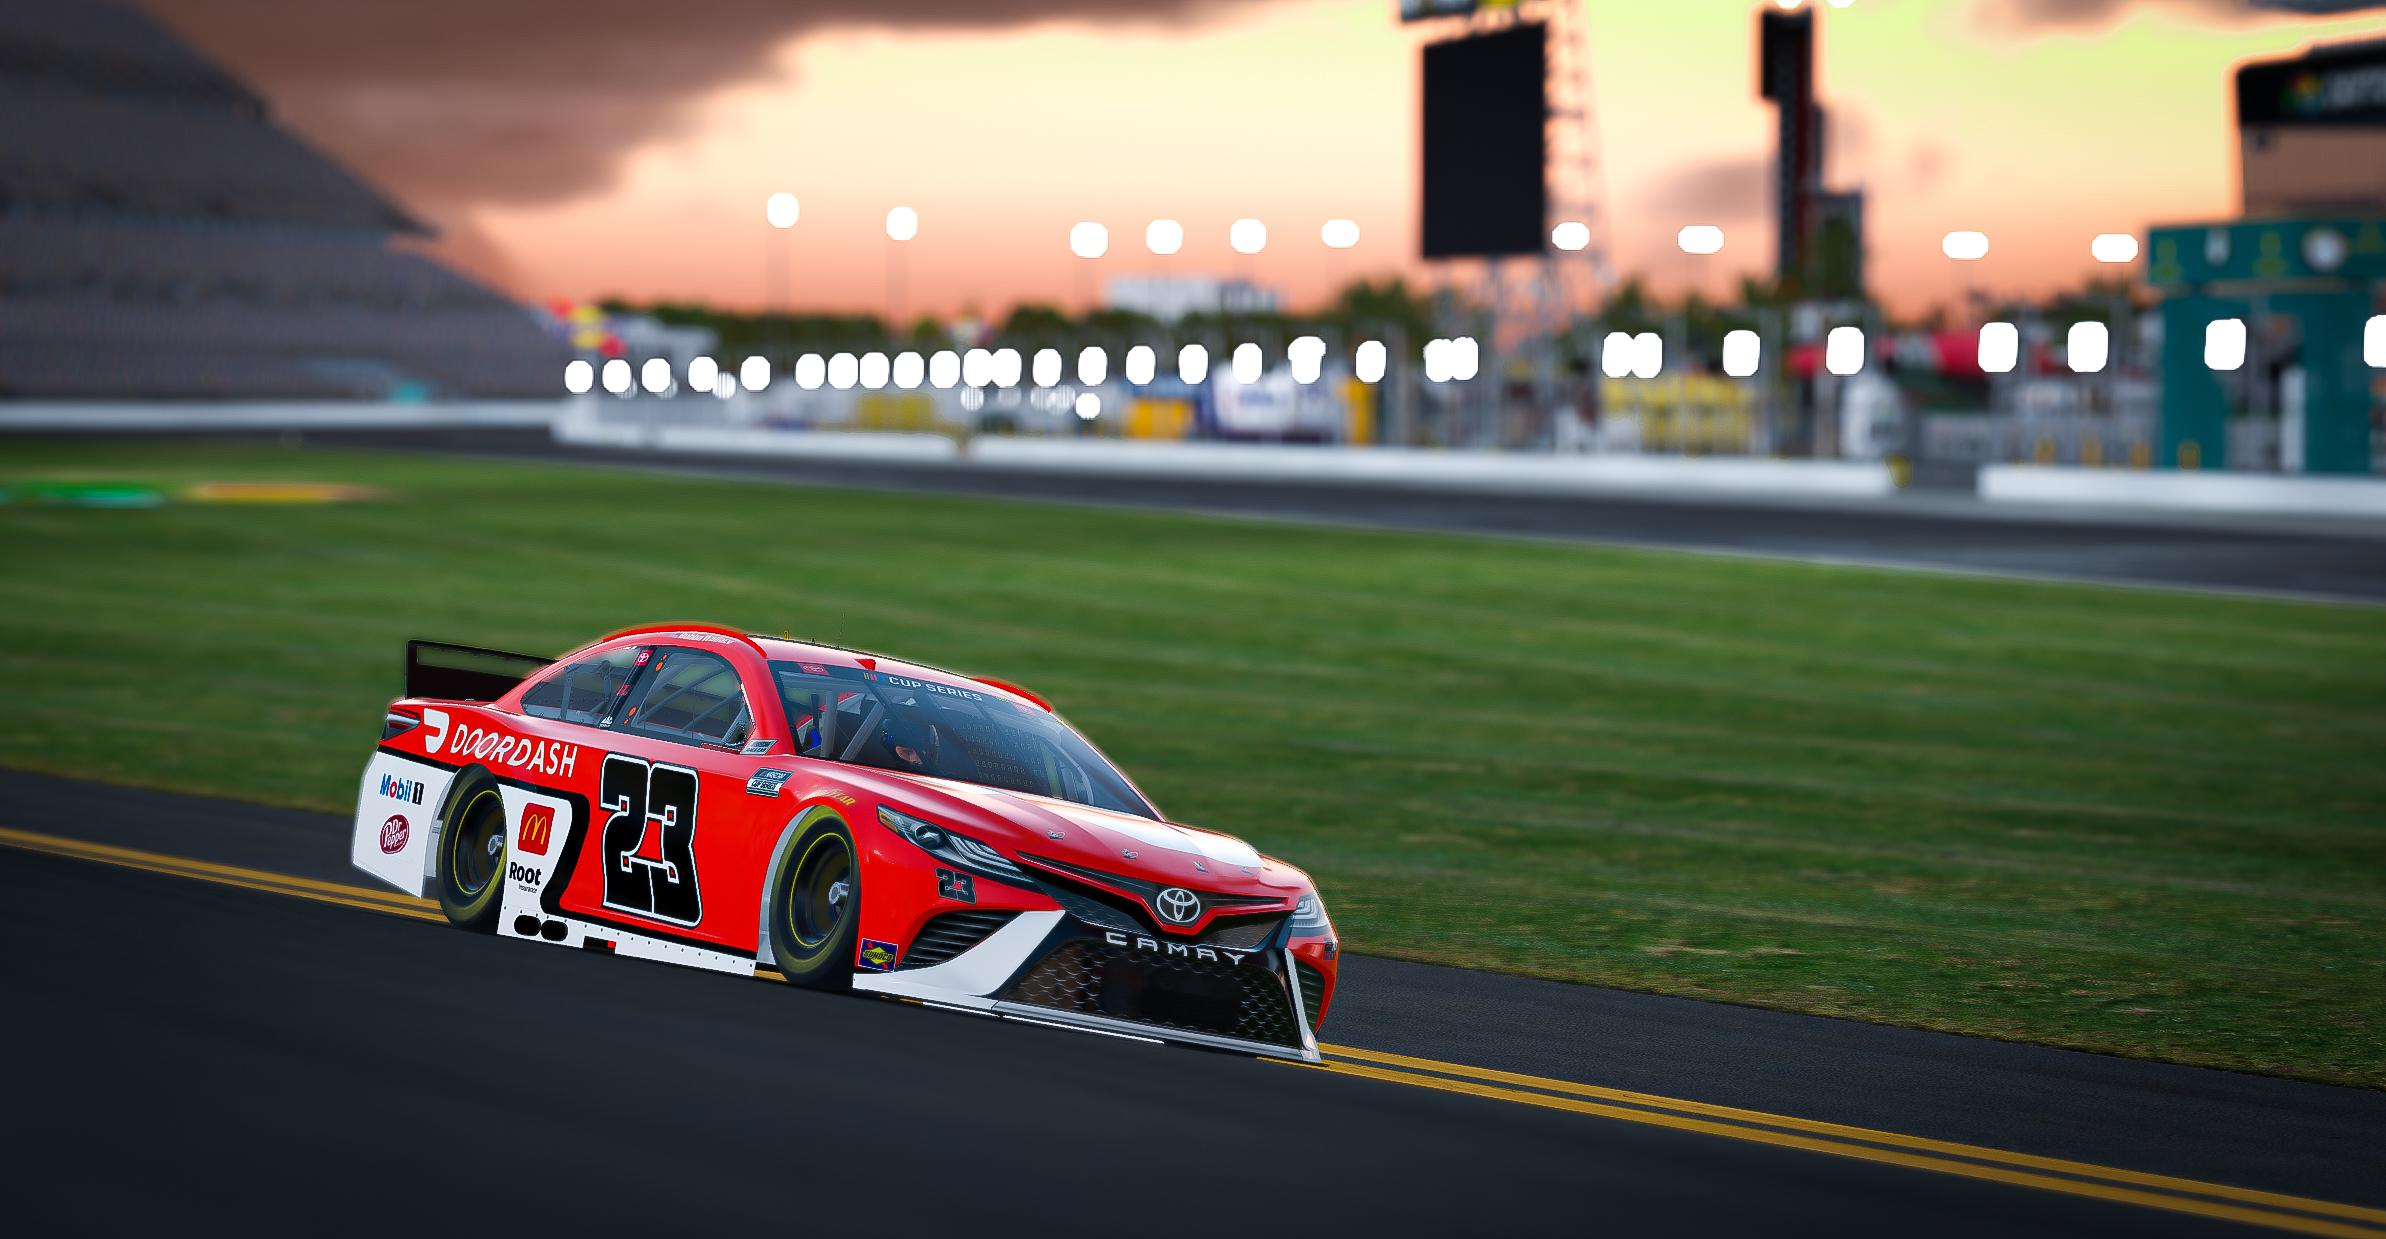 Preview of OFFICIAL 2021 Bubba Wallace 23XI DoorDash Red - w/ number by Adam Heili